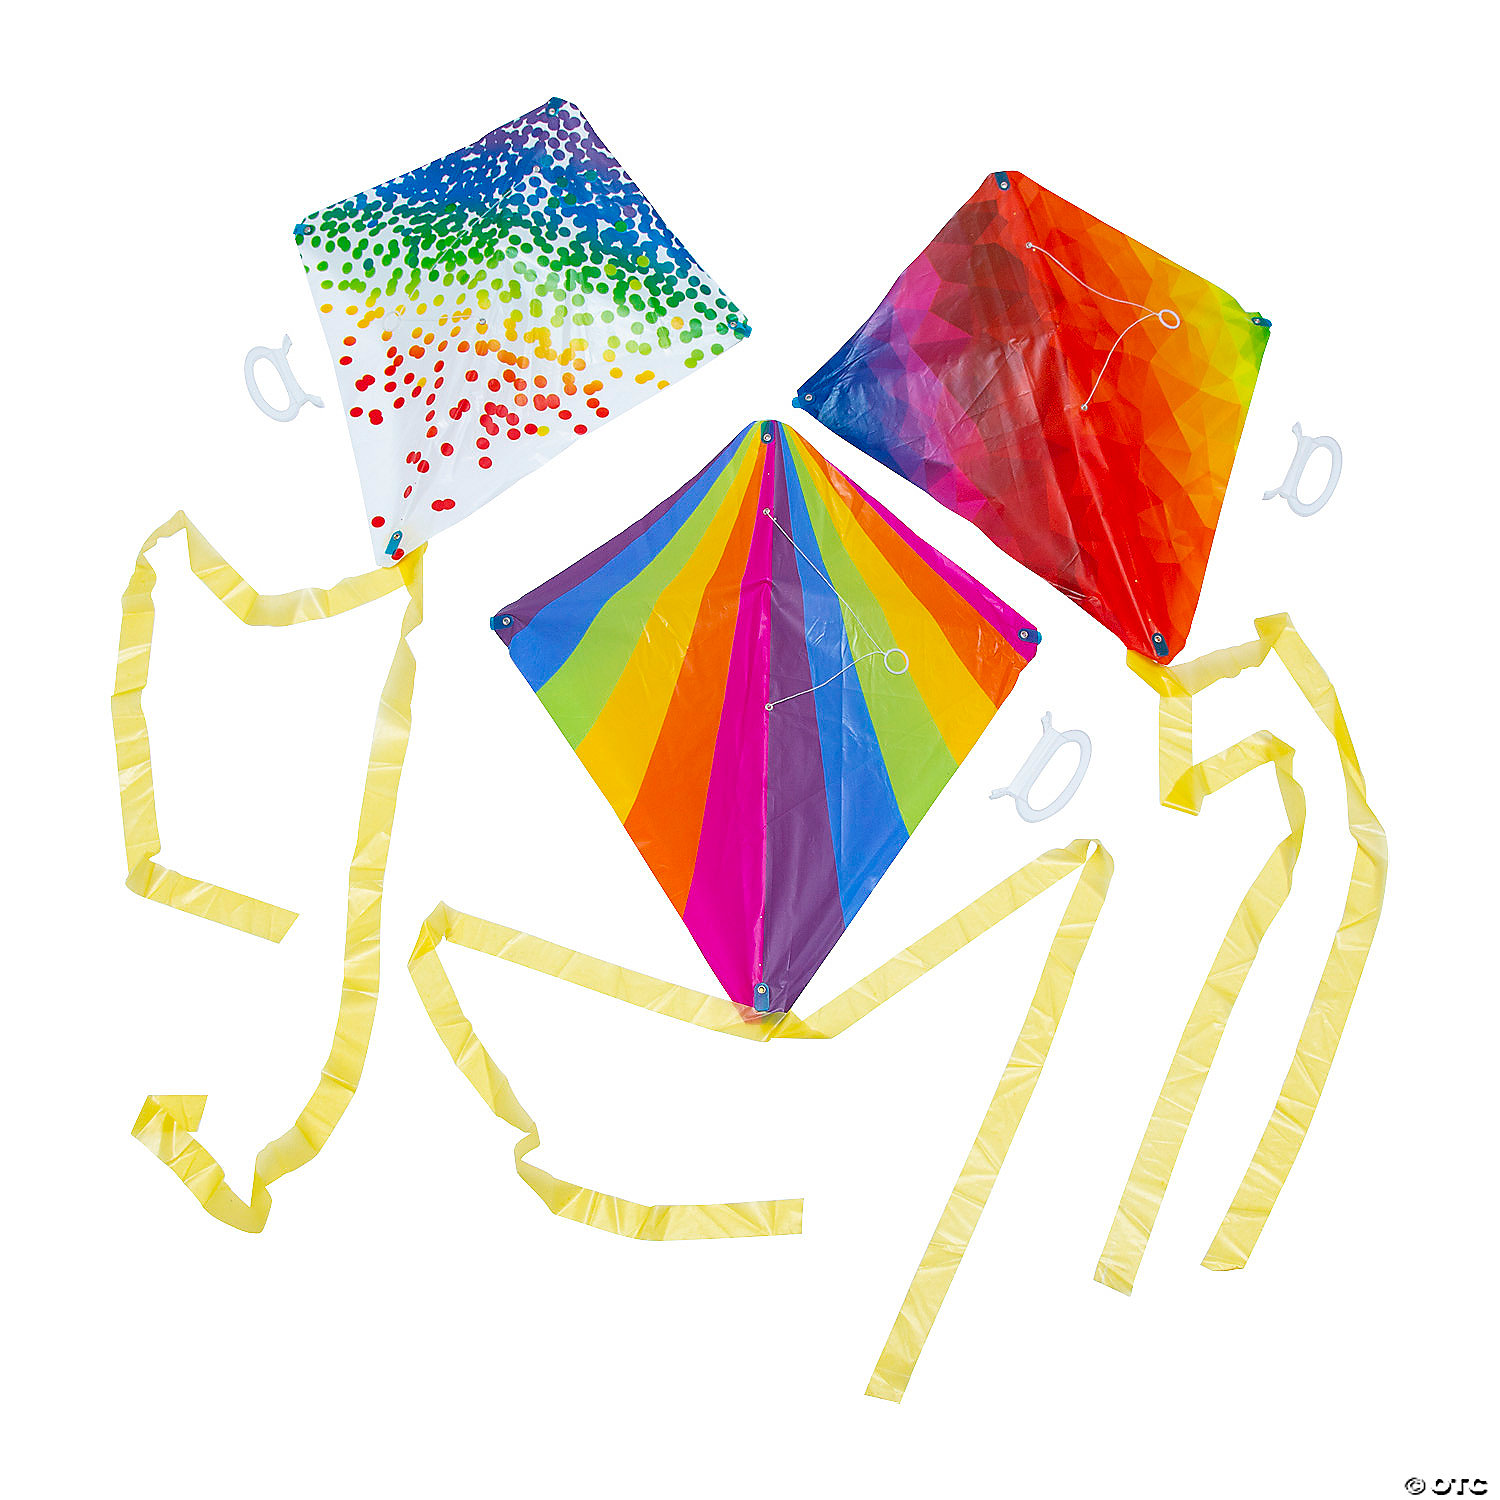 [CANCELED] Outdoor Kids Craft: Kites - Ages 5-10